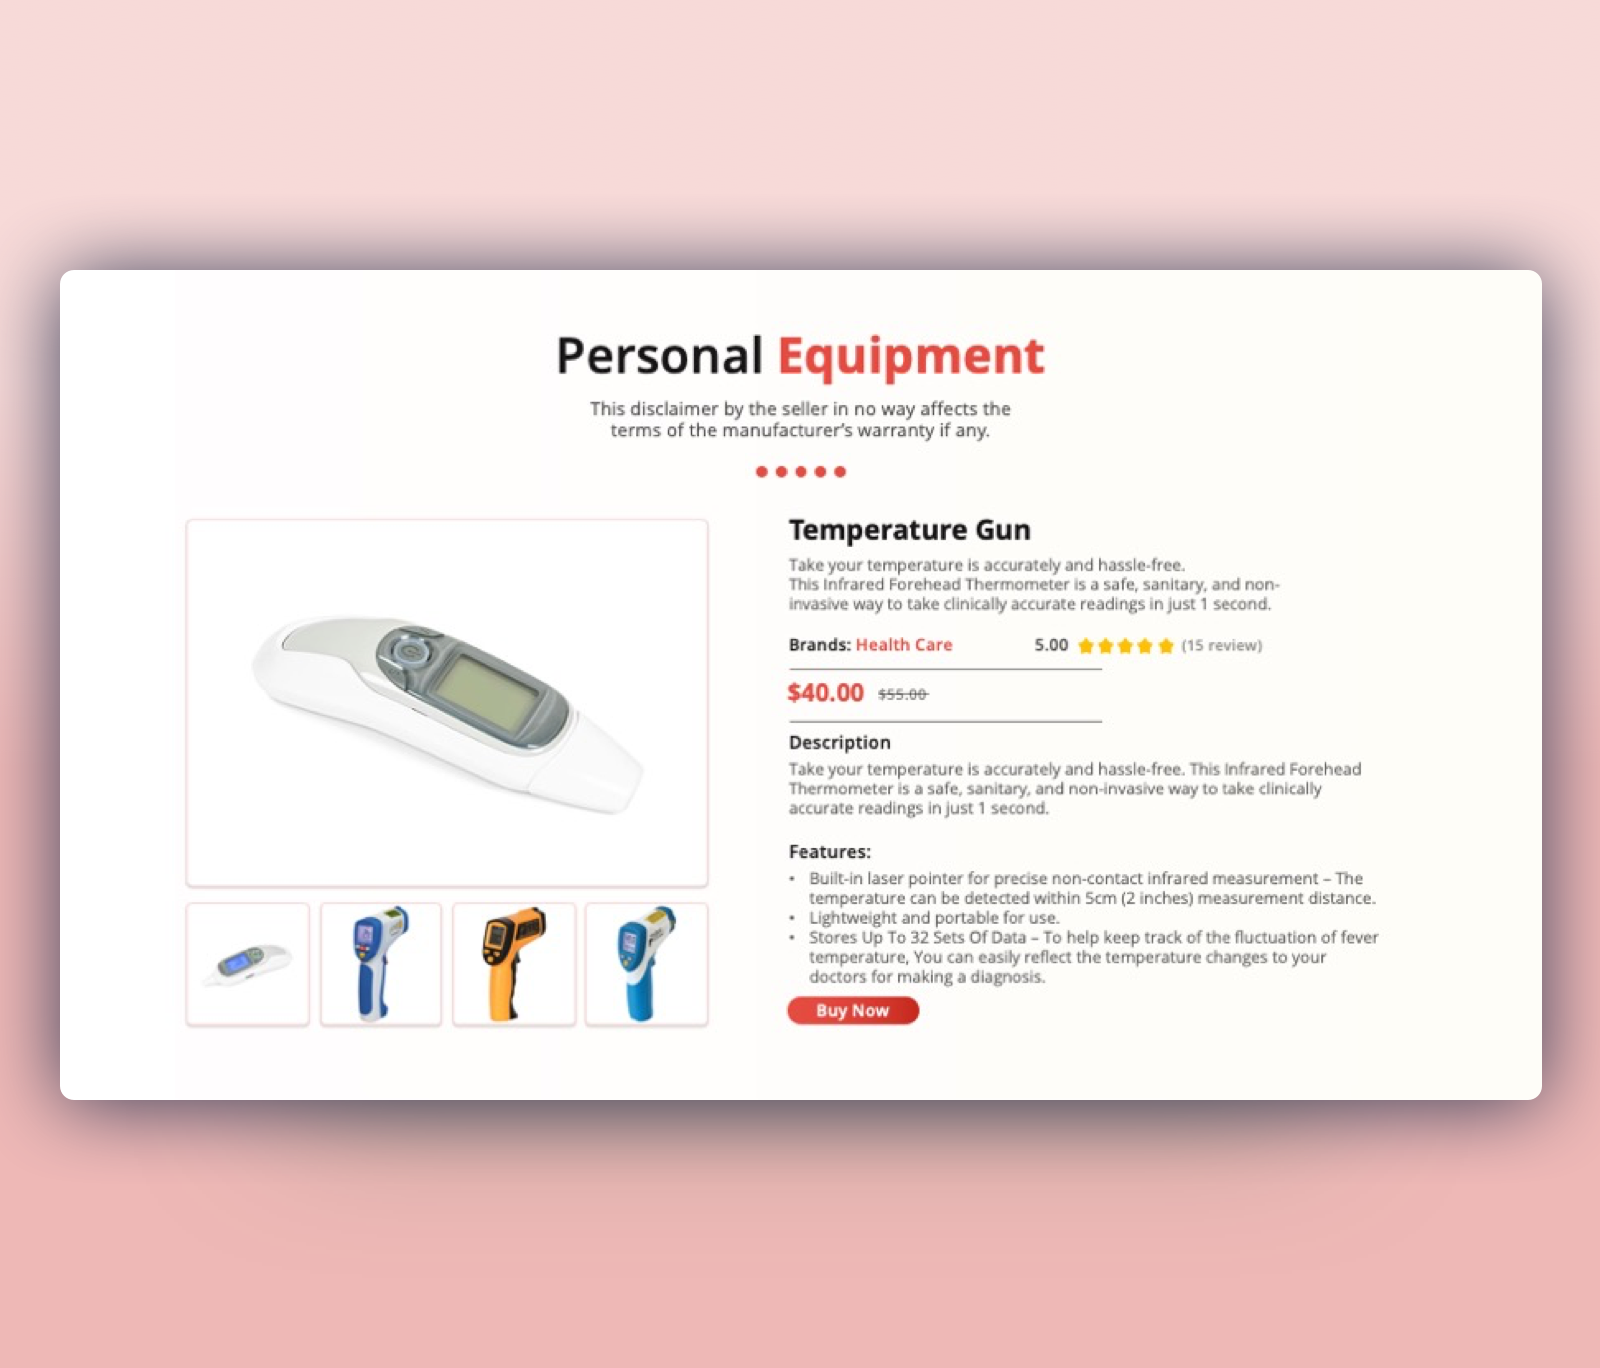 Thermometer Guns PPT – Personal Medical Equipment